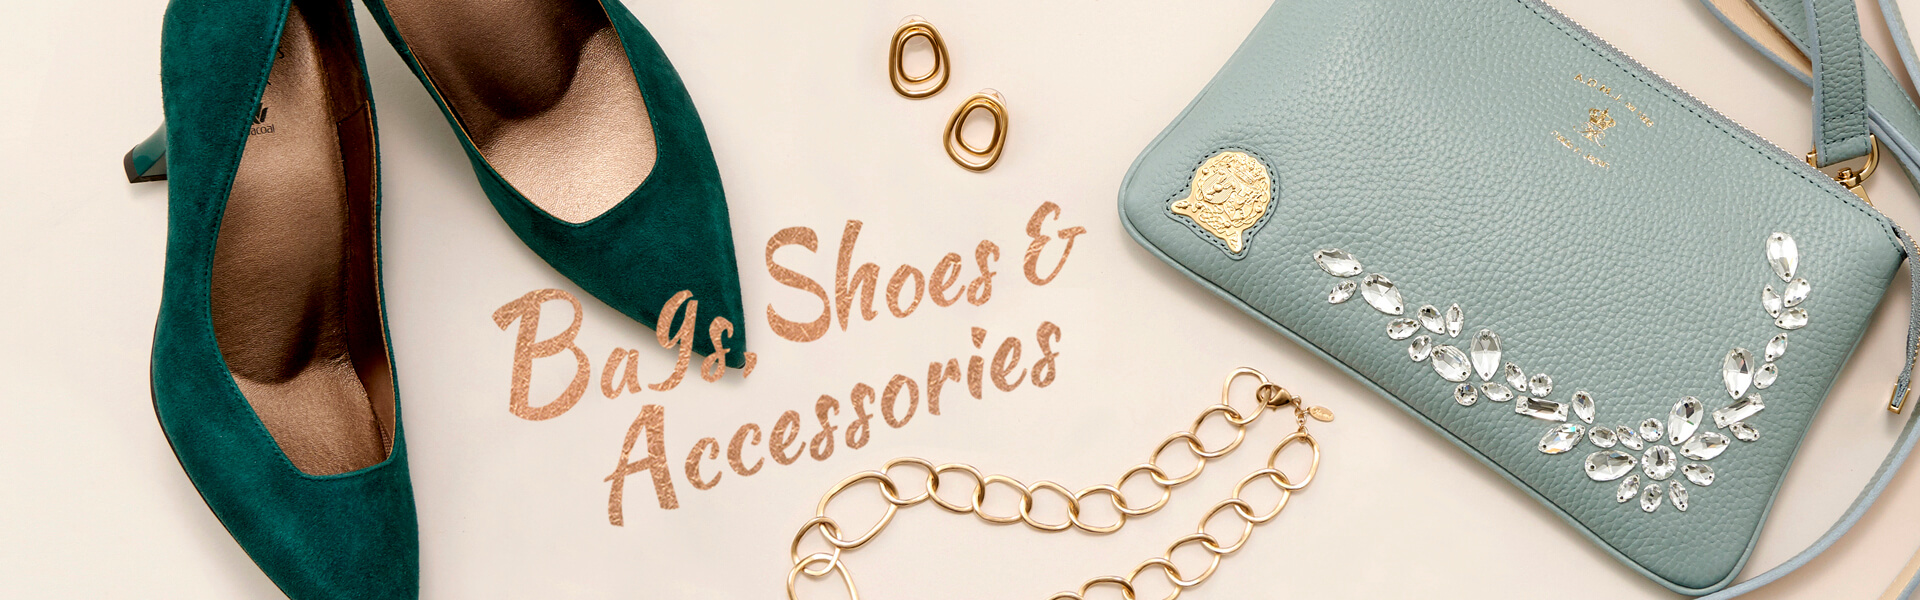 Bags,Shoes & Accessories